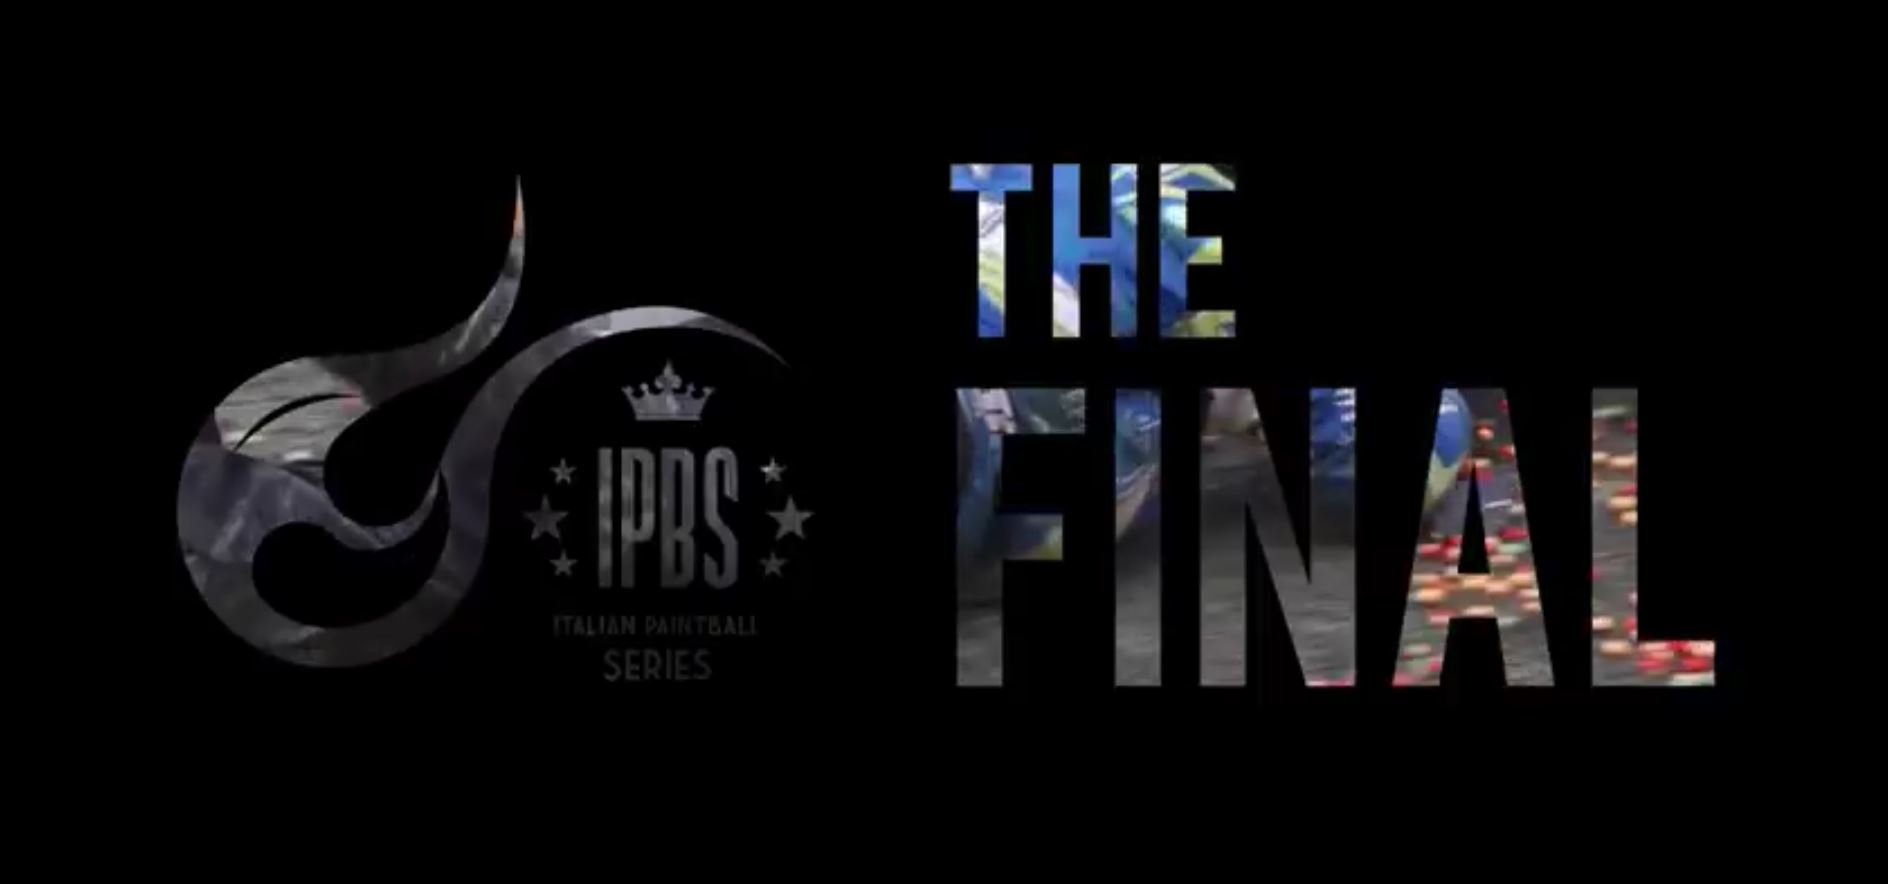 the final ipbs